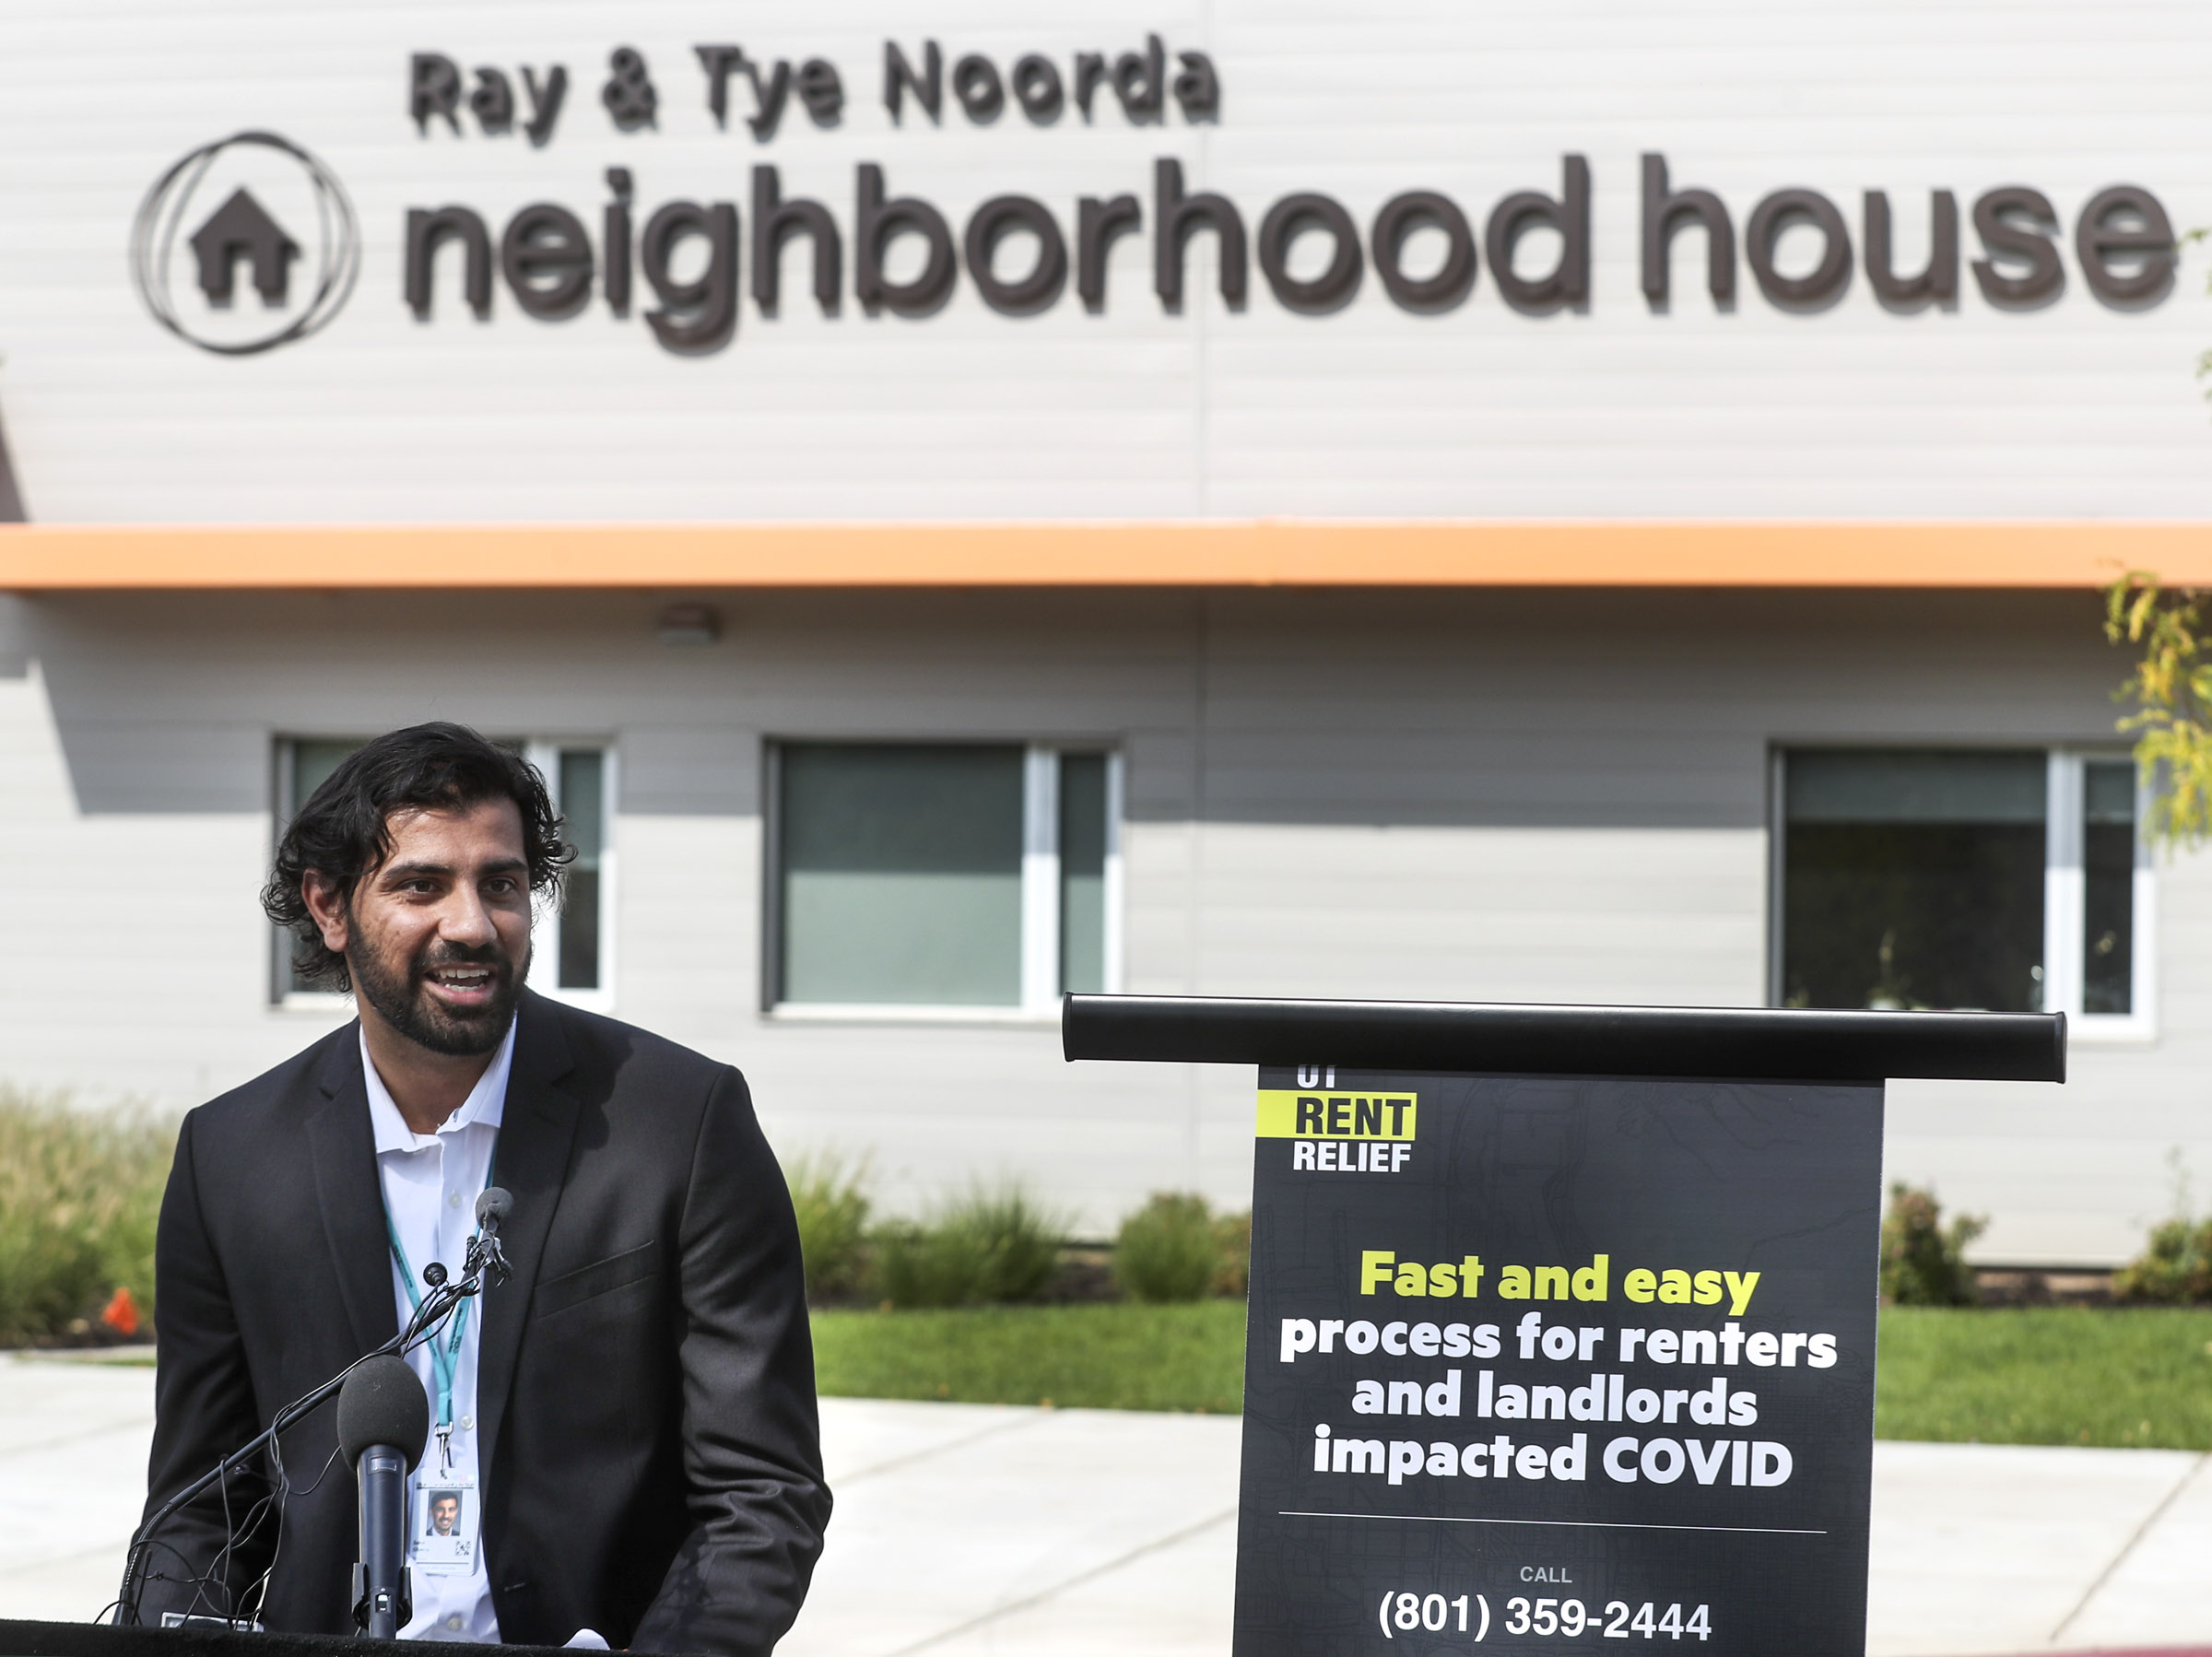 Sahil Oberoi, director of housing and case management for Utah Community Action, talks about rent relief programs for individuals and families whose income was impacted by the COVID-19 pandemic during a press conference at the Neighborhood House in Salt Lake City on Wednesday, Sept. 23, 2020. Salt Lake City Mayor Erin Mendenhall and Salt Lake County Mayor Jenny Wilson held the joint press conference to update information for city and county residents about rent relief programs and the Centers for Disease Control and Prevention's eviction moratorium.